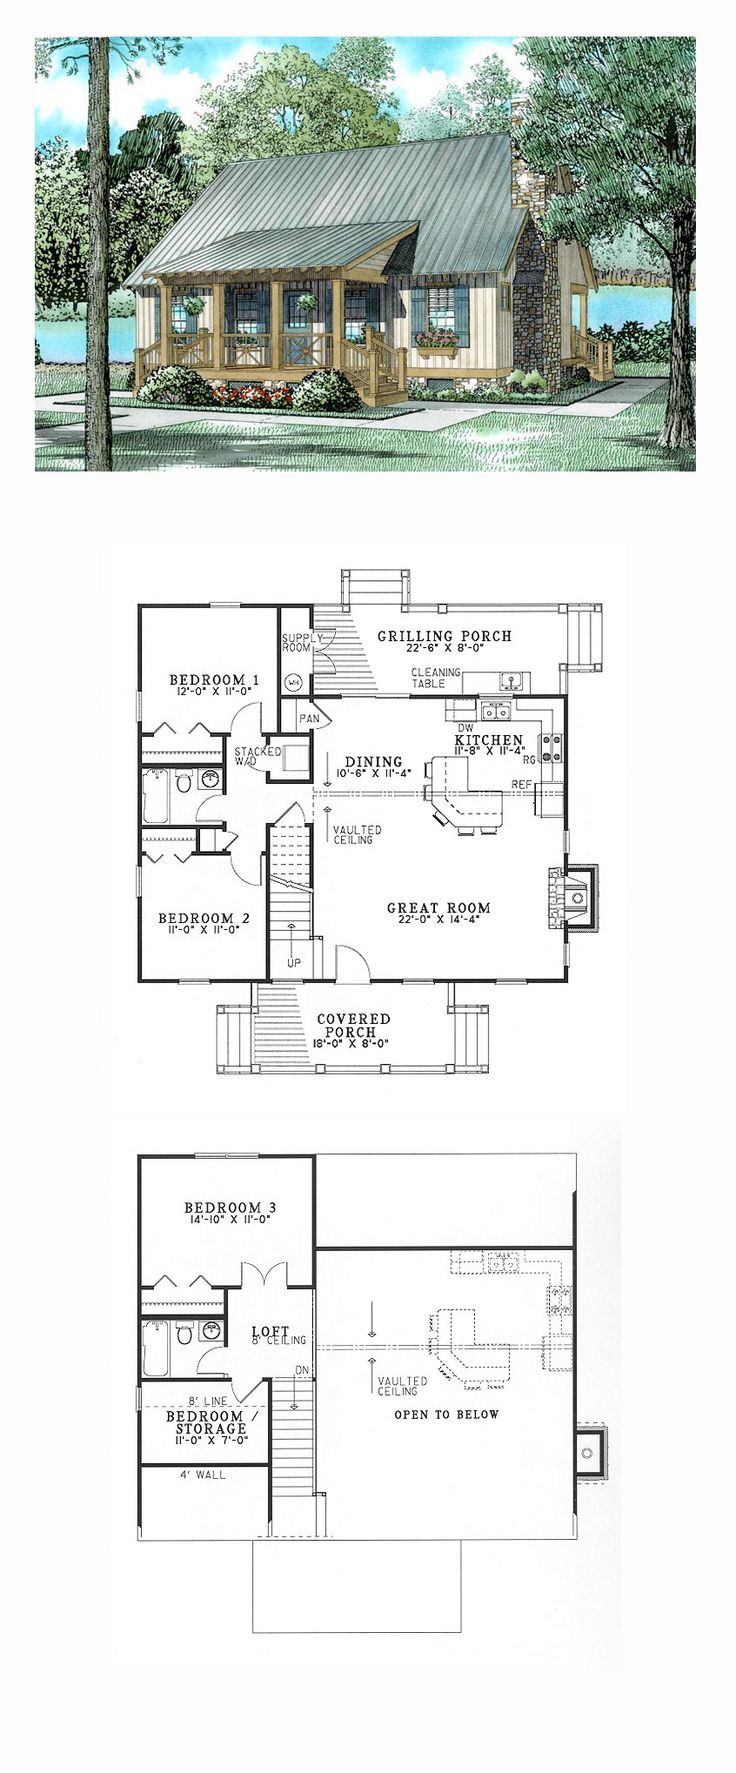 House plans home plan details carolina craftsman cottage for Carolina cottage house plans